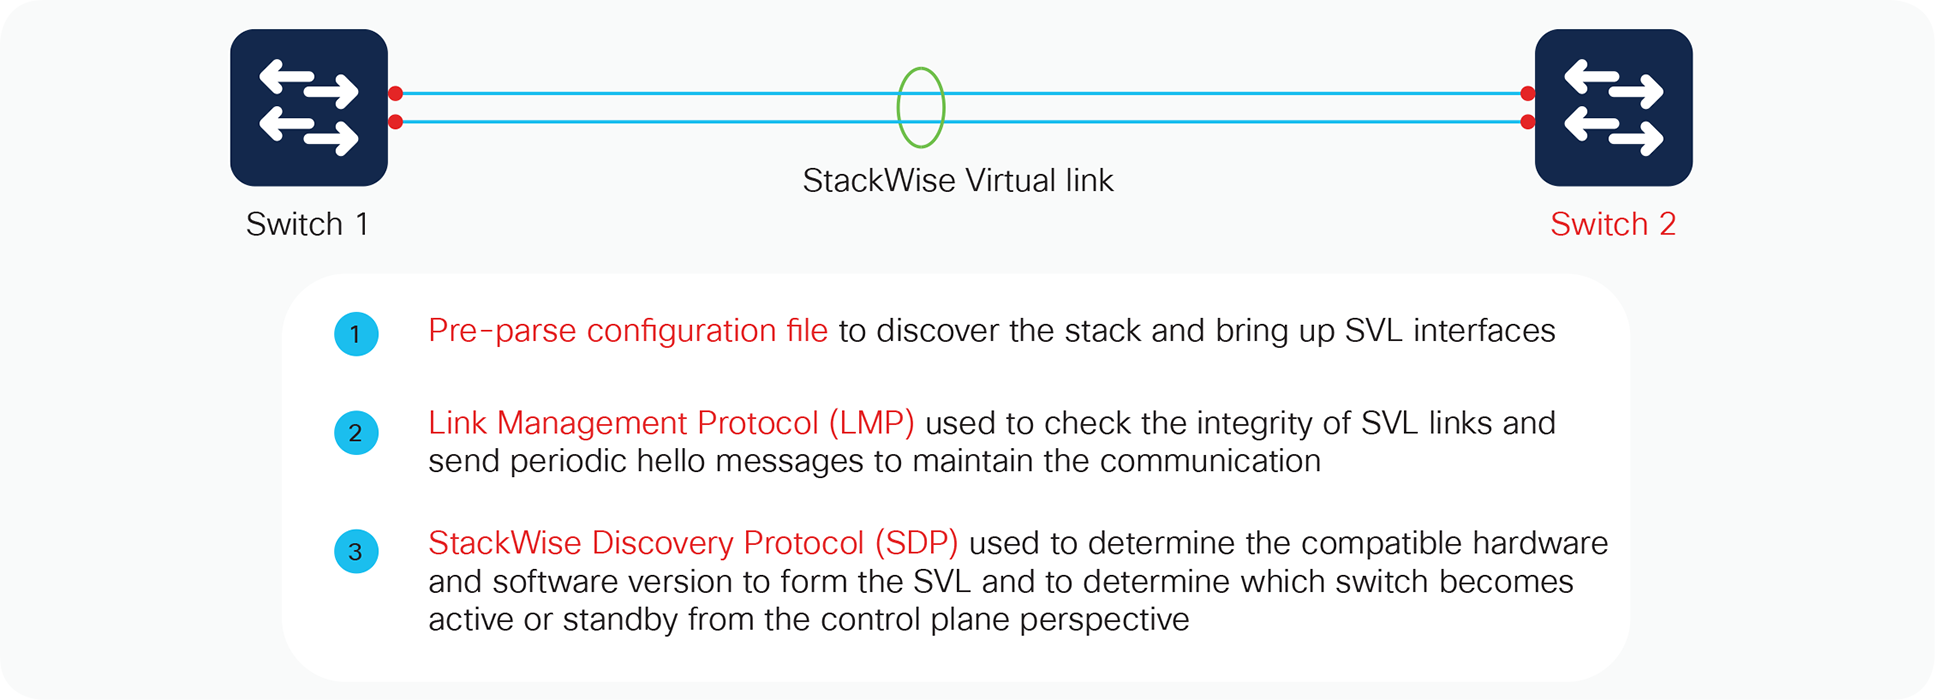 StackWise Virtual link initialization